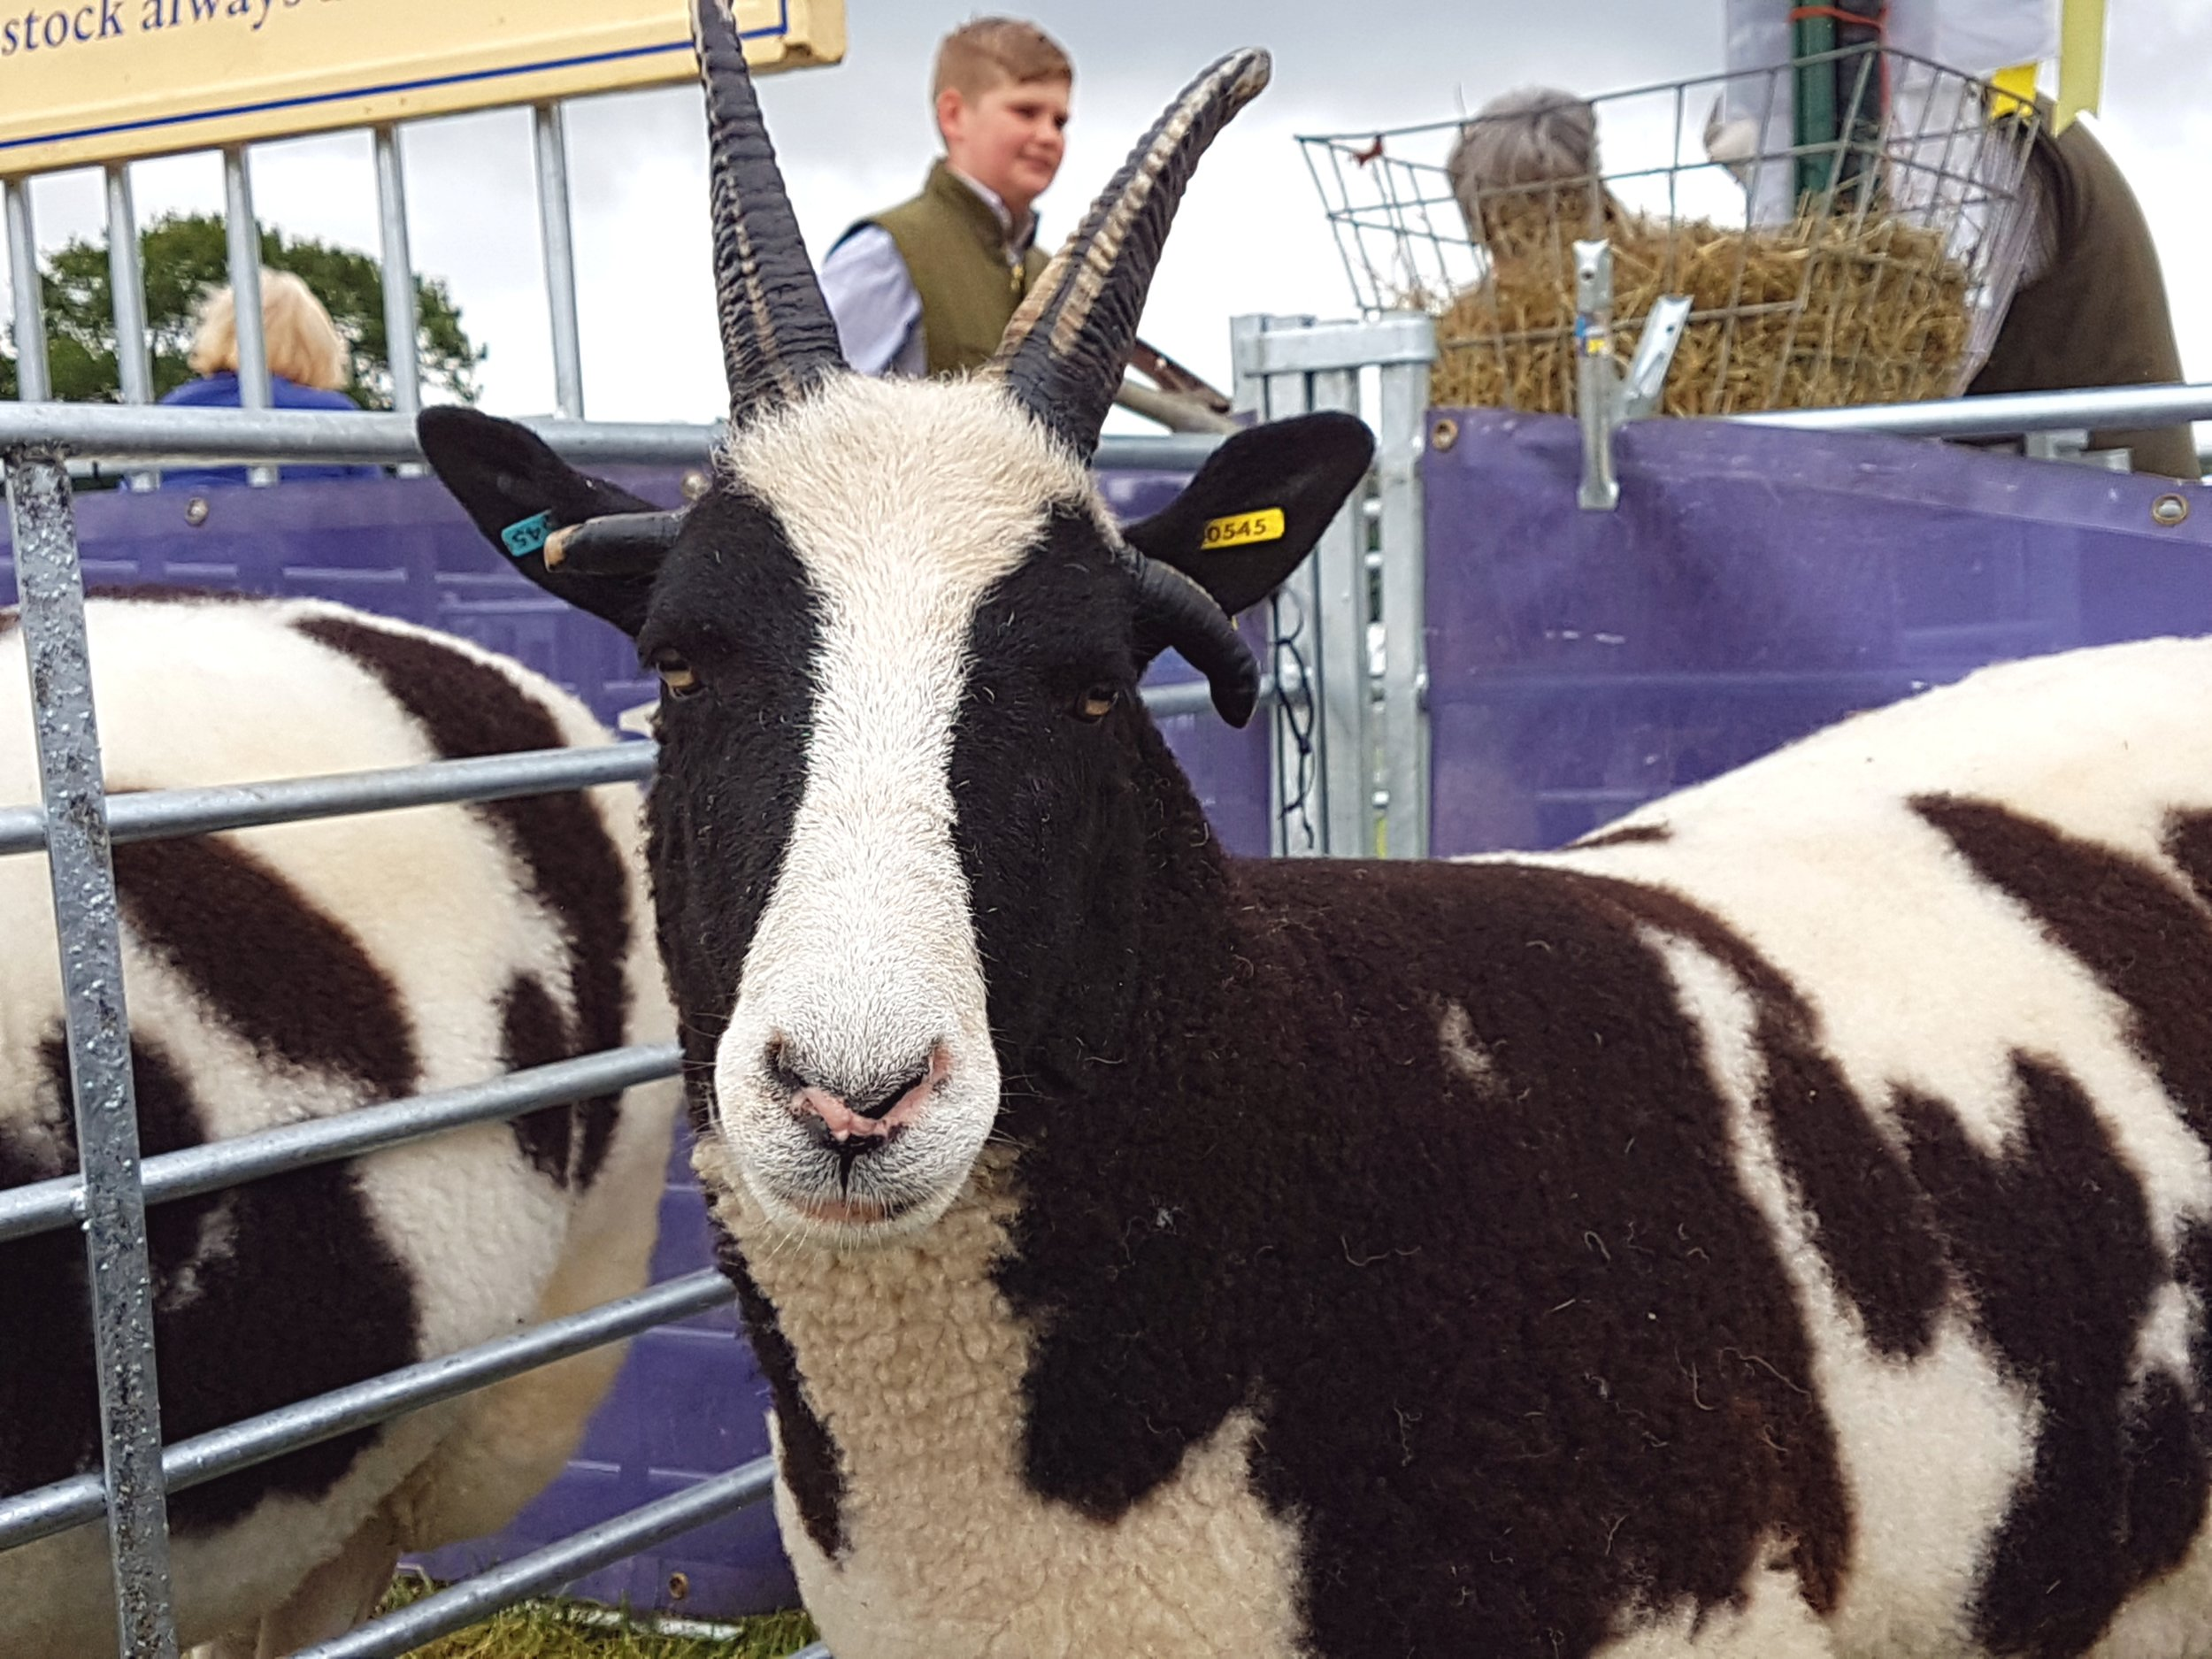 Tickets are now on sale for the Derbyshire County Show 2018 - Penguin PR: public relations, media and communications